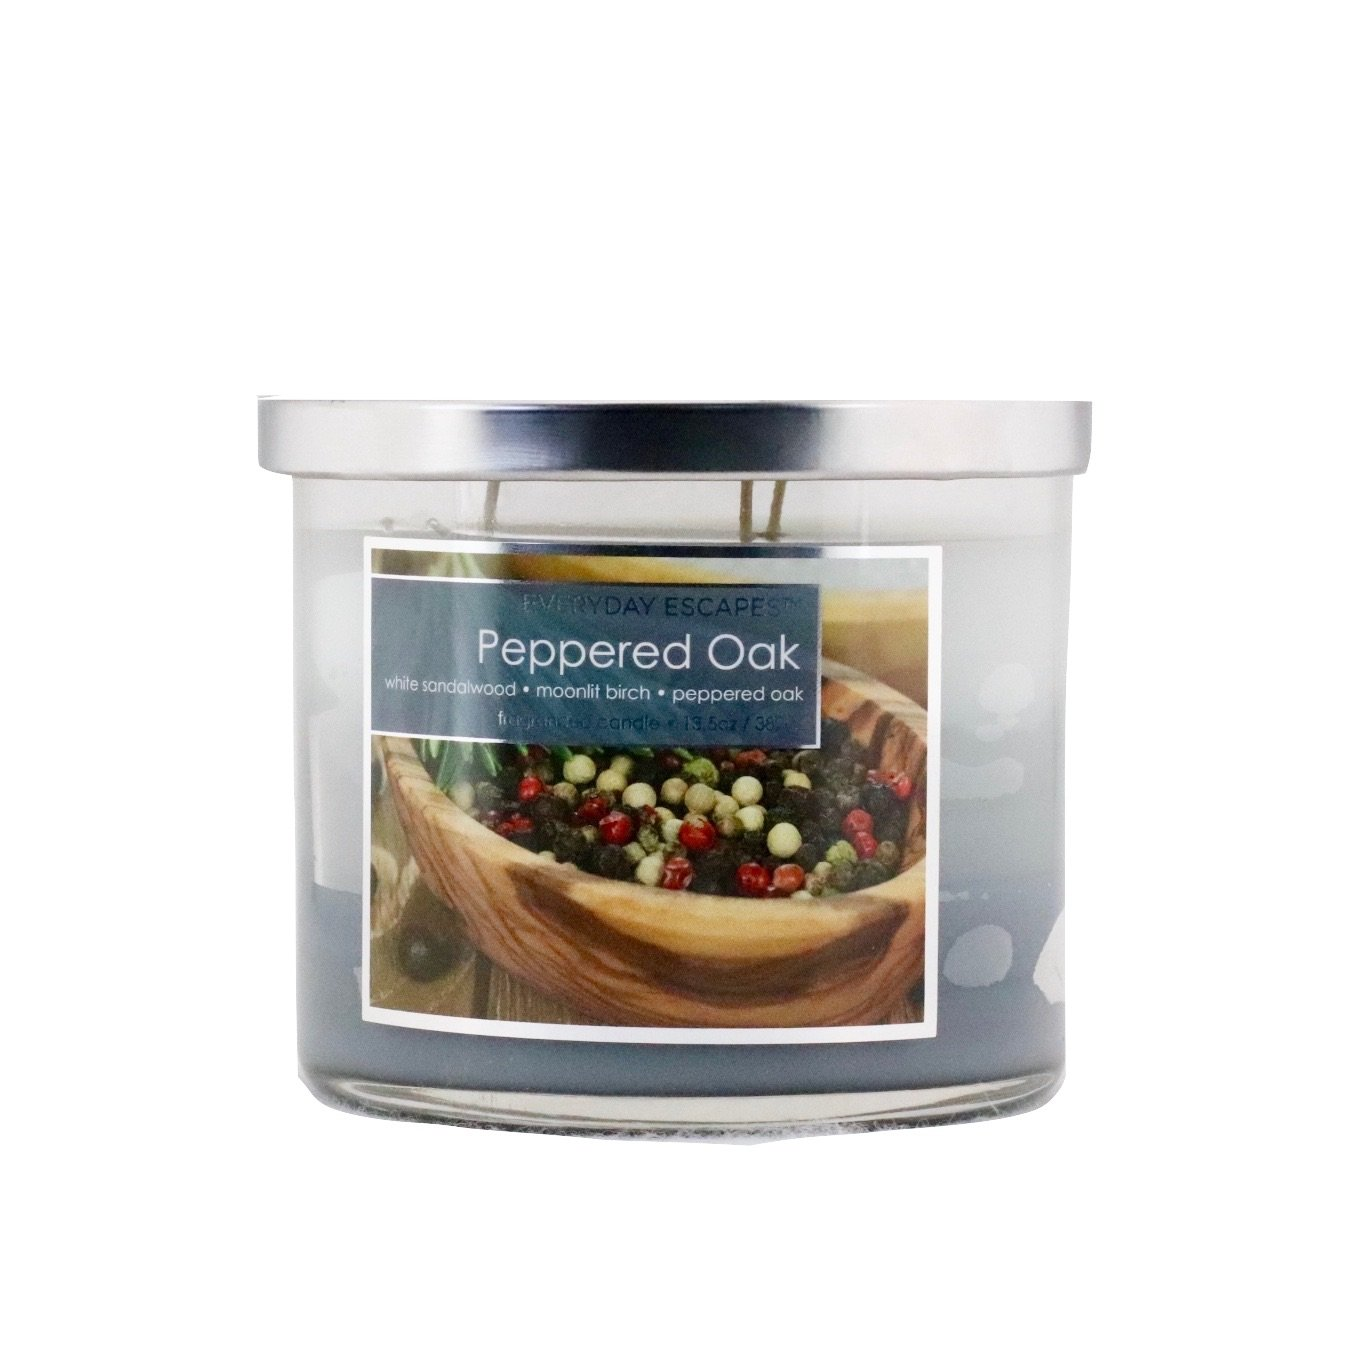 Everyday Escapes by MVP Group Scented Tri-layer Triple Wicks Candle 13.5 oz -Peppered Oak White Sandalwood/Moonlit Birch/Peppered Oak by Everyday